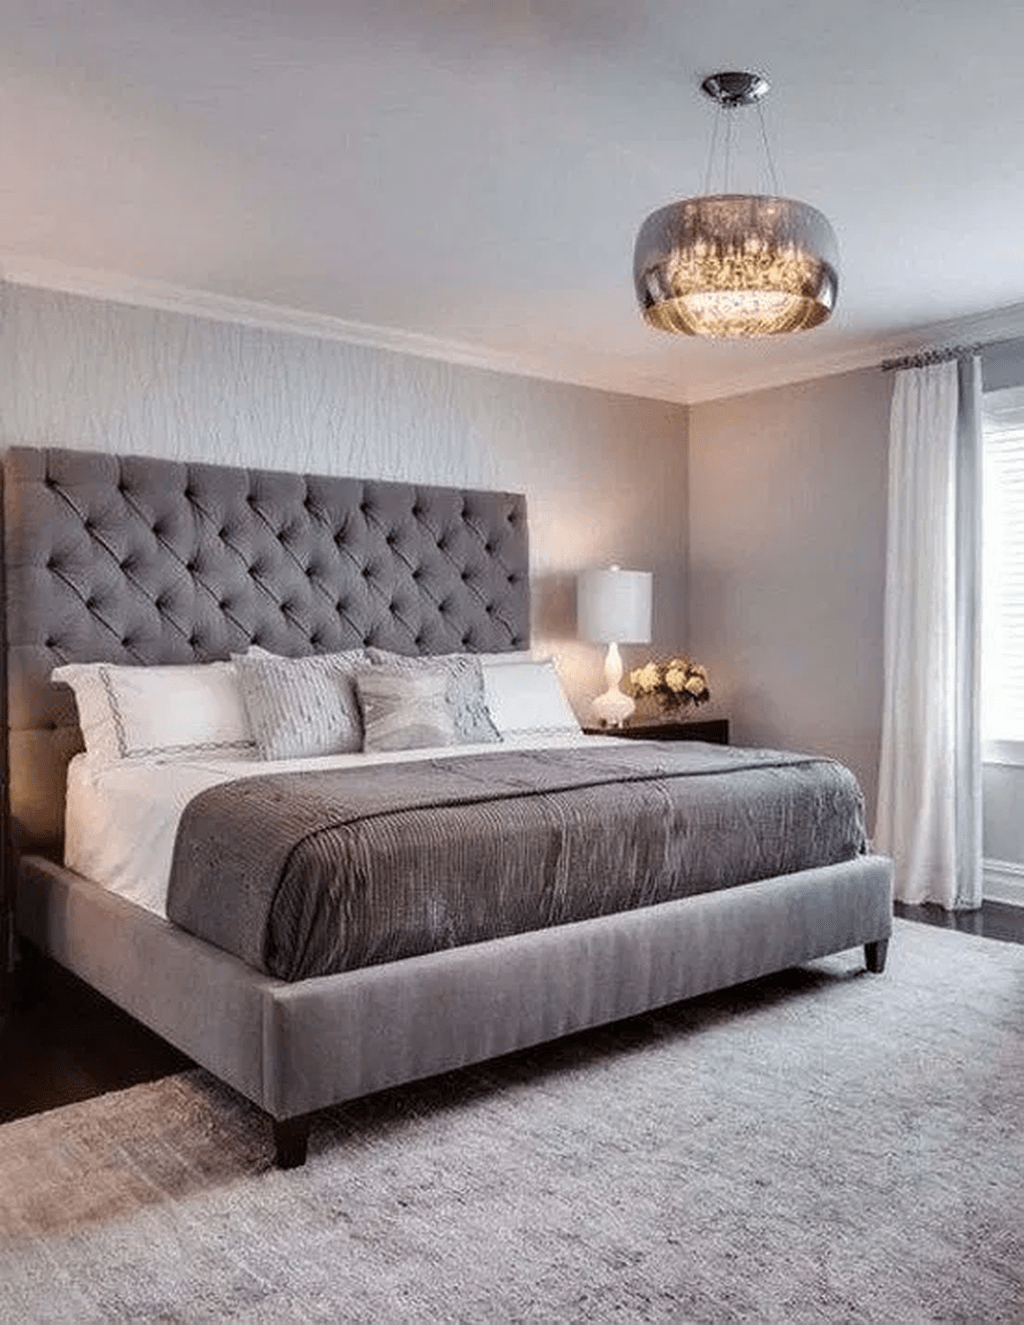 Stunning Romantic Bedroom Decor Ideas You Will Love 27